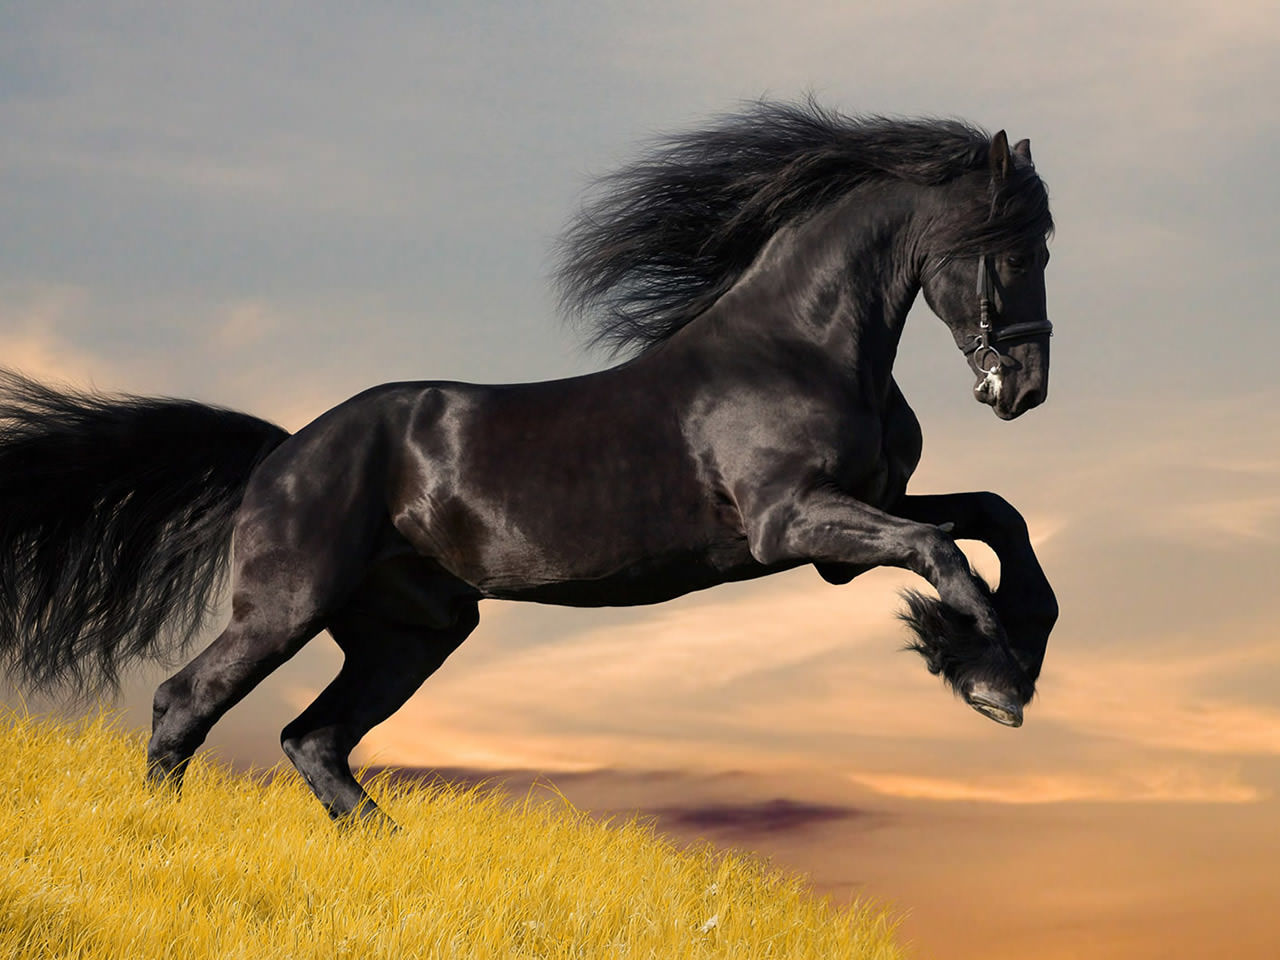 Black Horse Wallpaper 1280x960